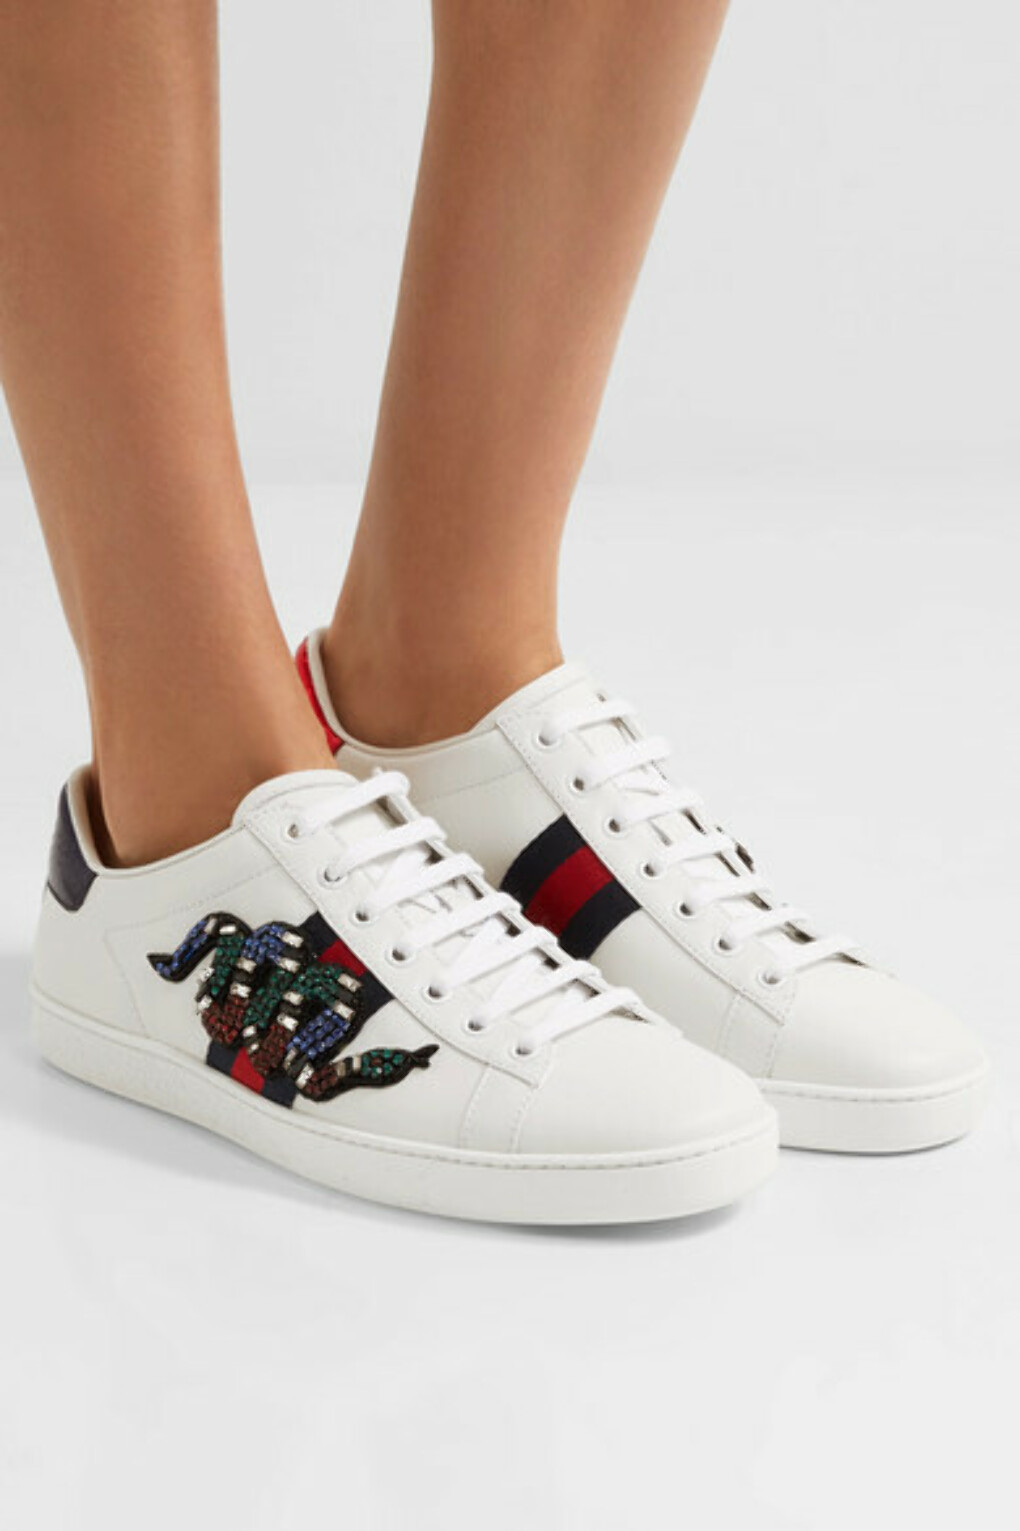 Gucci - Snake-trimmed embellished leather sneakers